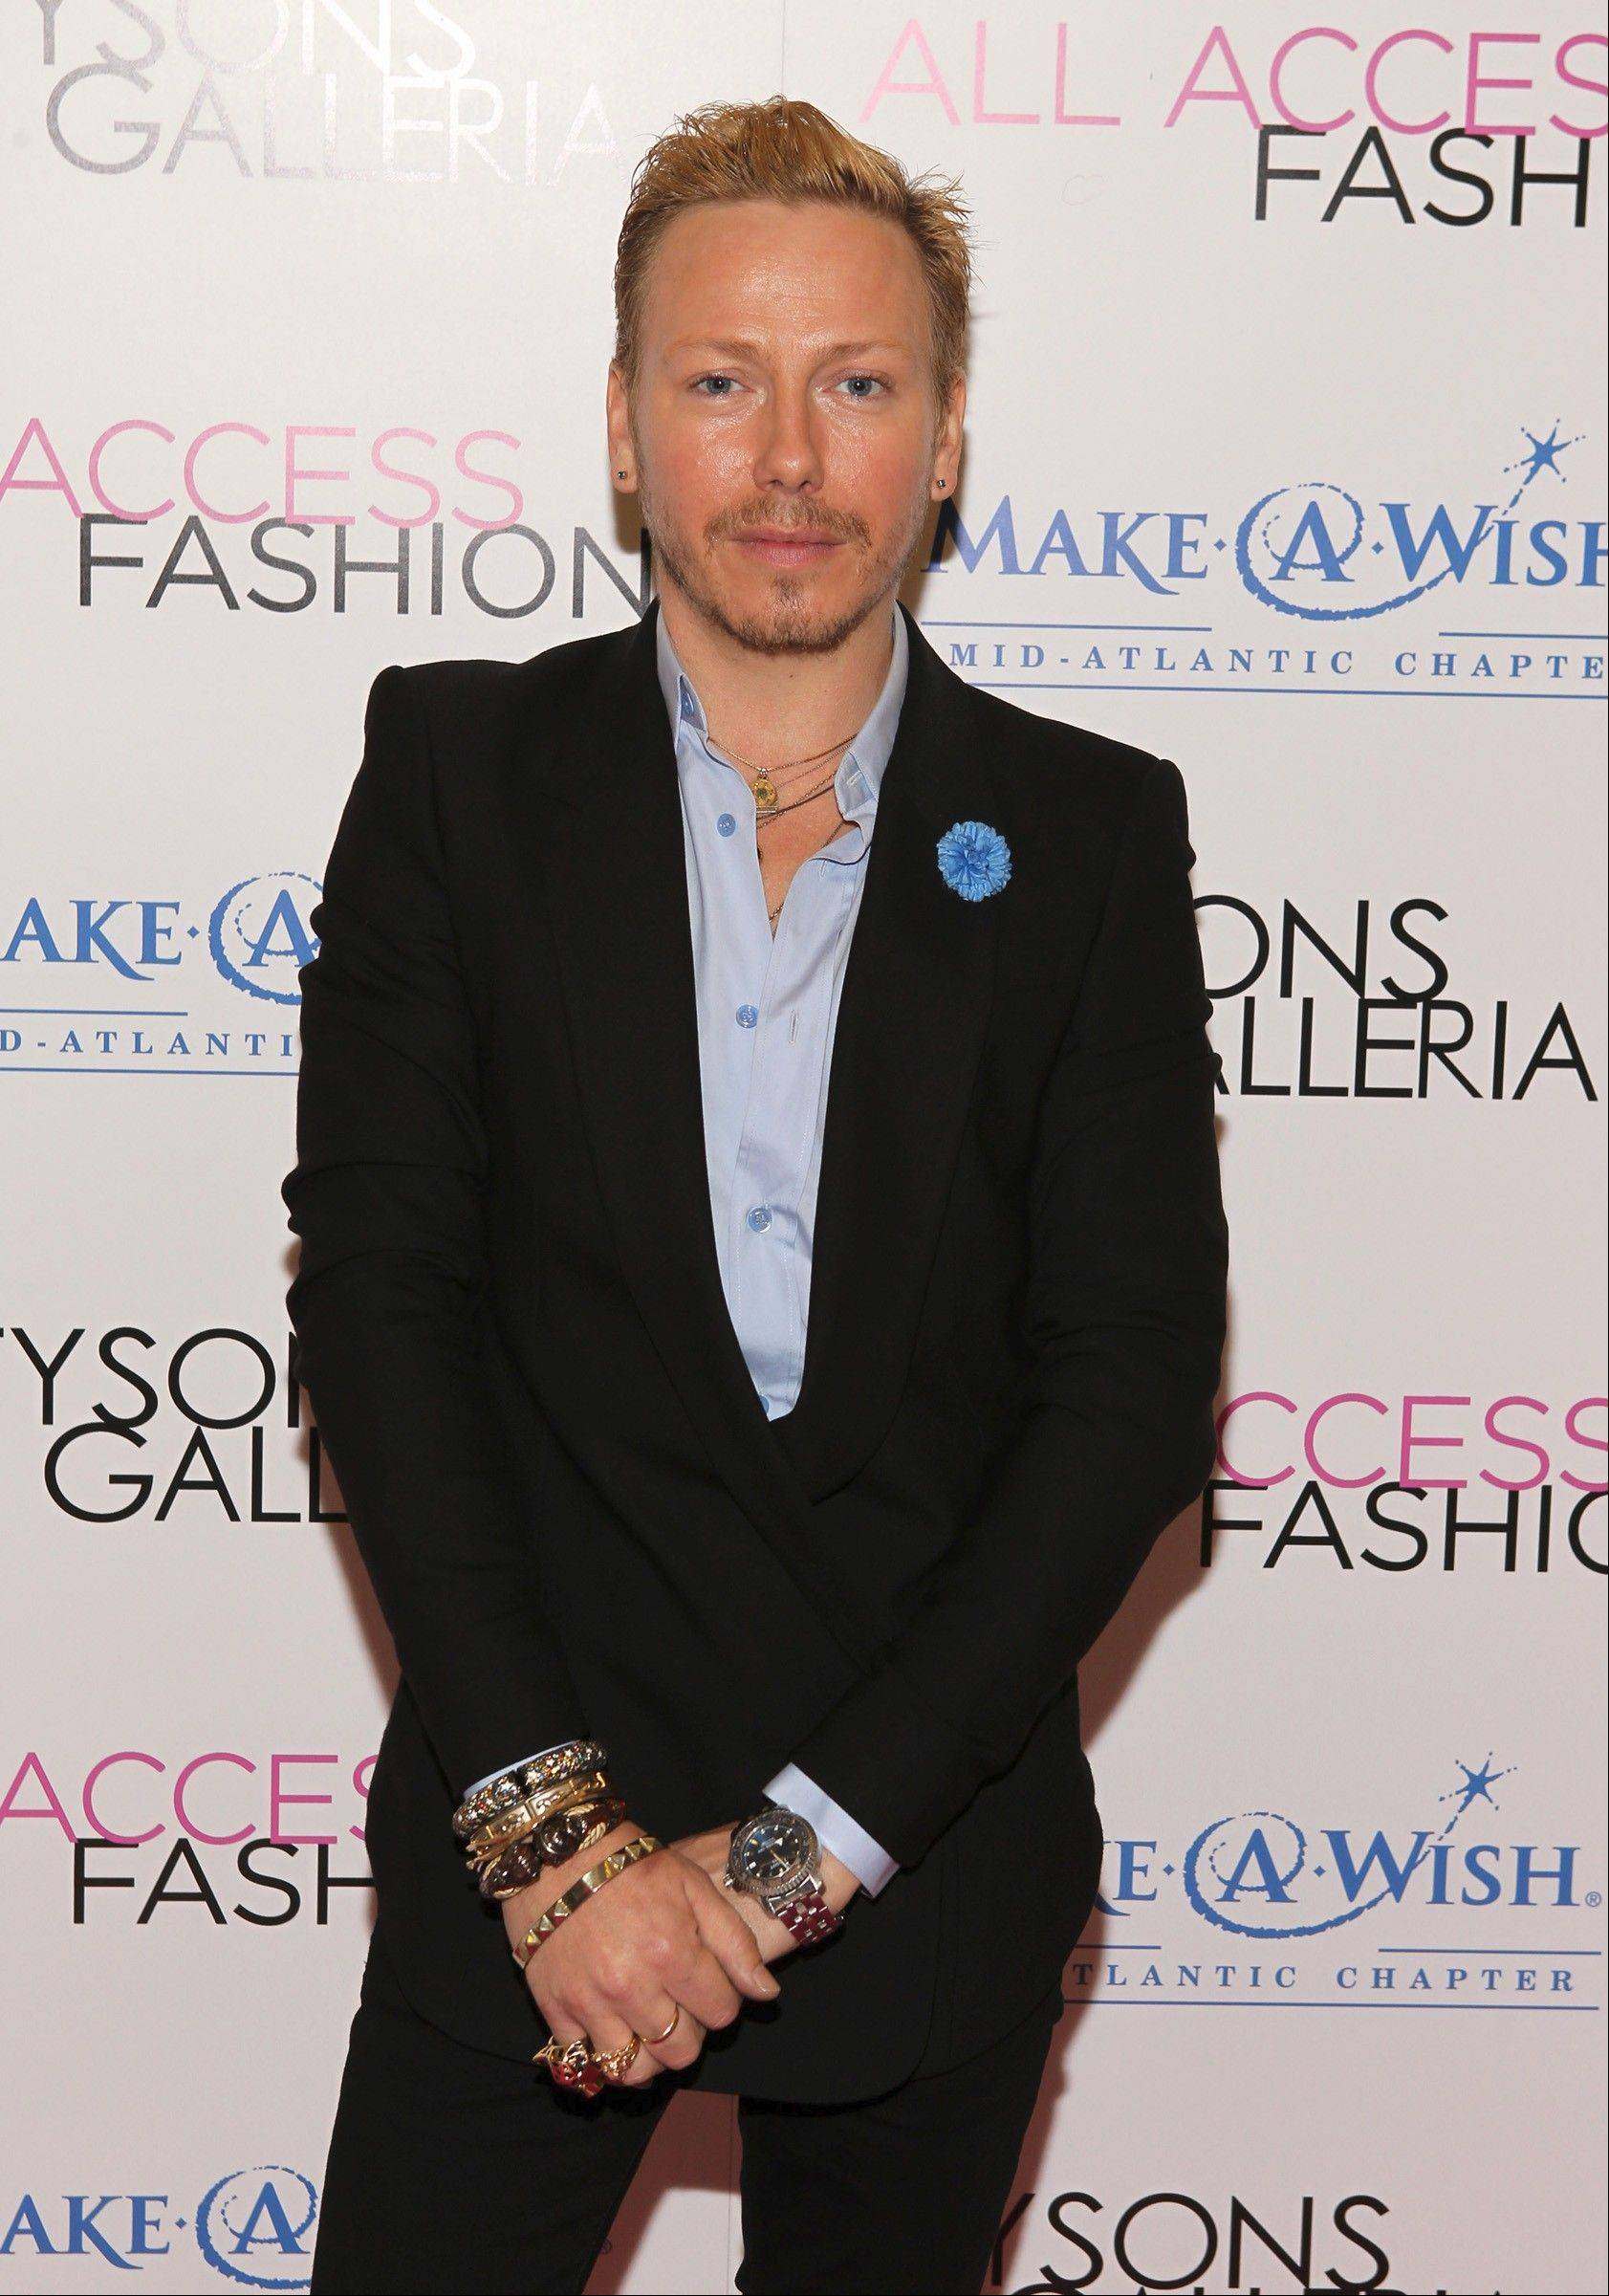 Eric Daman is the Emmy-winning costume designer who created looks for the Carrie Bradshaw character in �Sex and the City� and Blair Waldorf in �Gossip Girl.�